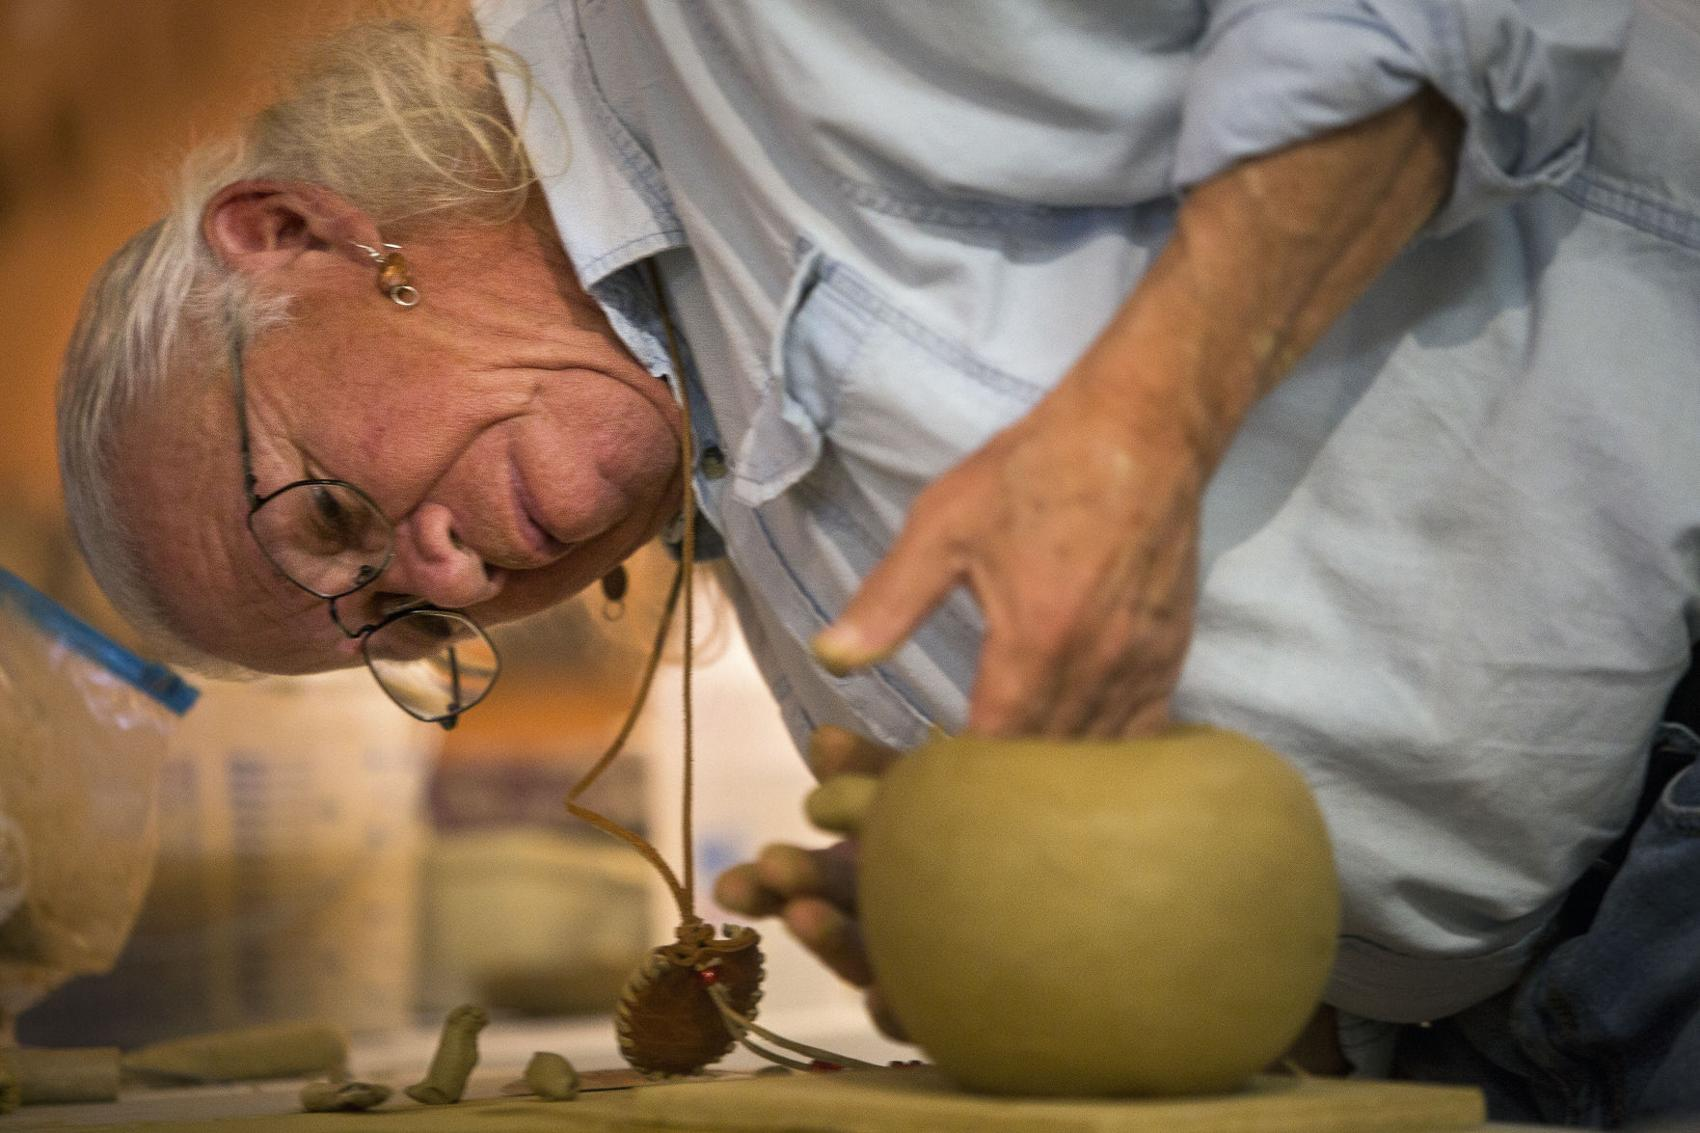 """In 1976 I made my first pottery in a class when I got out of the army."" Keith Brown also known as ""Little Bear"" carefully smoothes out a clay pot in the making during a Native American Arts festival at the Native American Studies Center on Dec. 1, 2018 in Lancaster. Andrew Whitaker/Staff  By Andrew Whitaker awhitaker@postandcourier.com lutheran indian ministries native news"